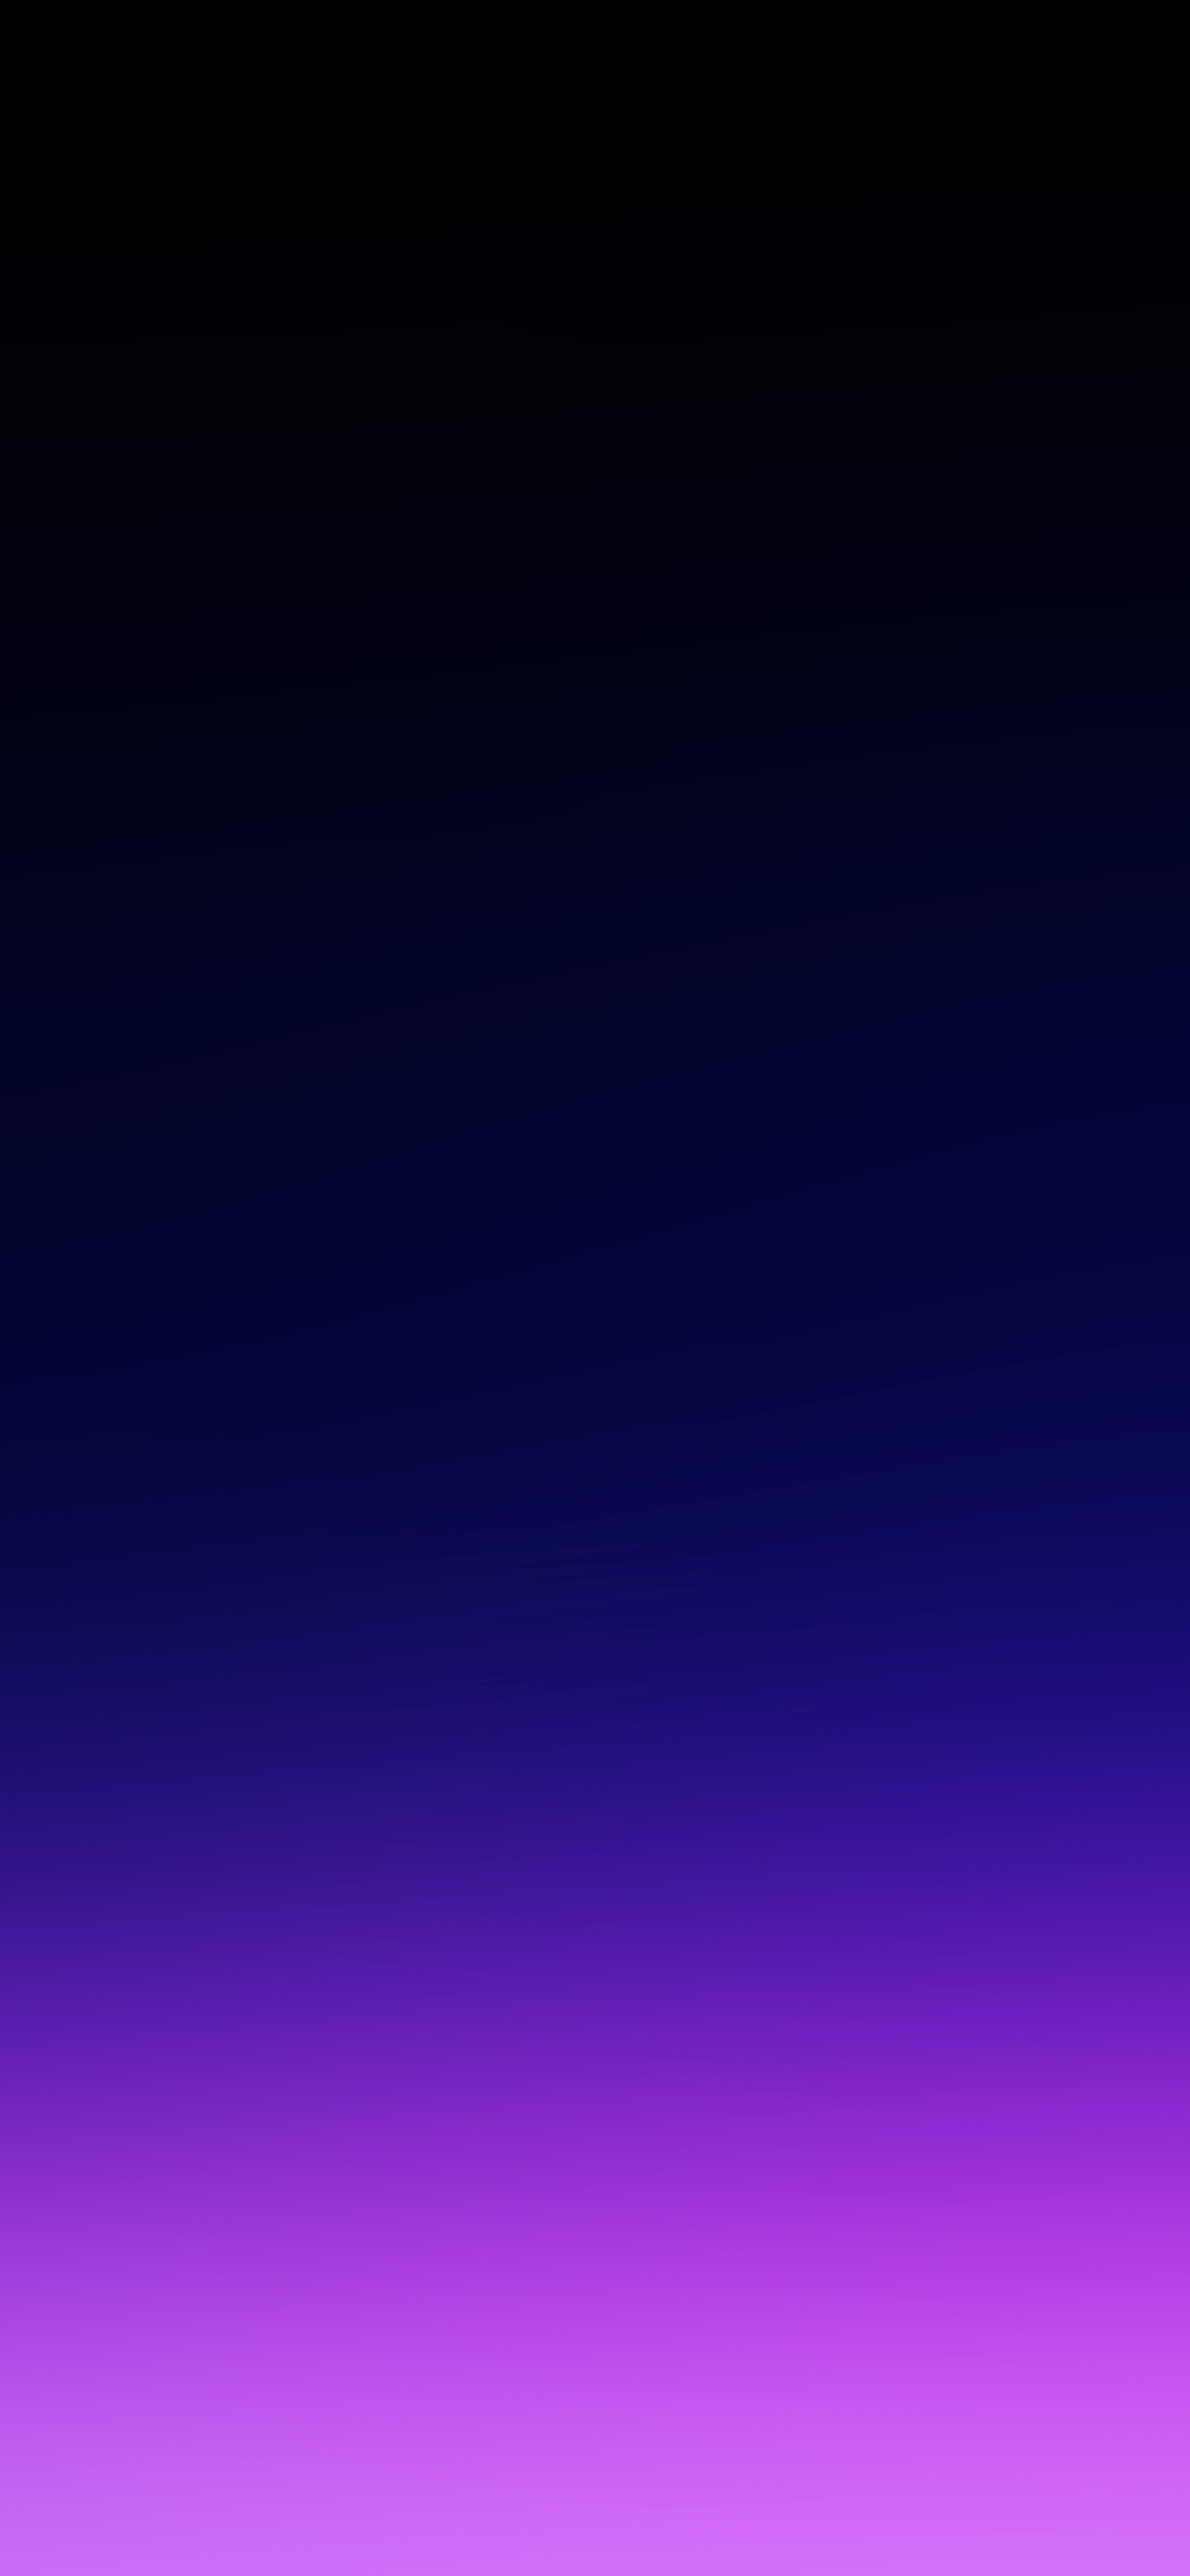 iPhone wallpaper gradient colors purple Gradient colors